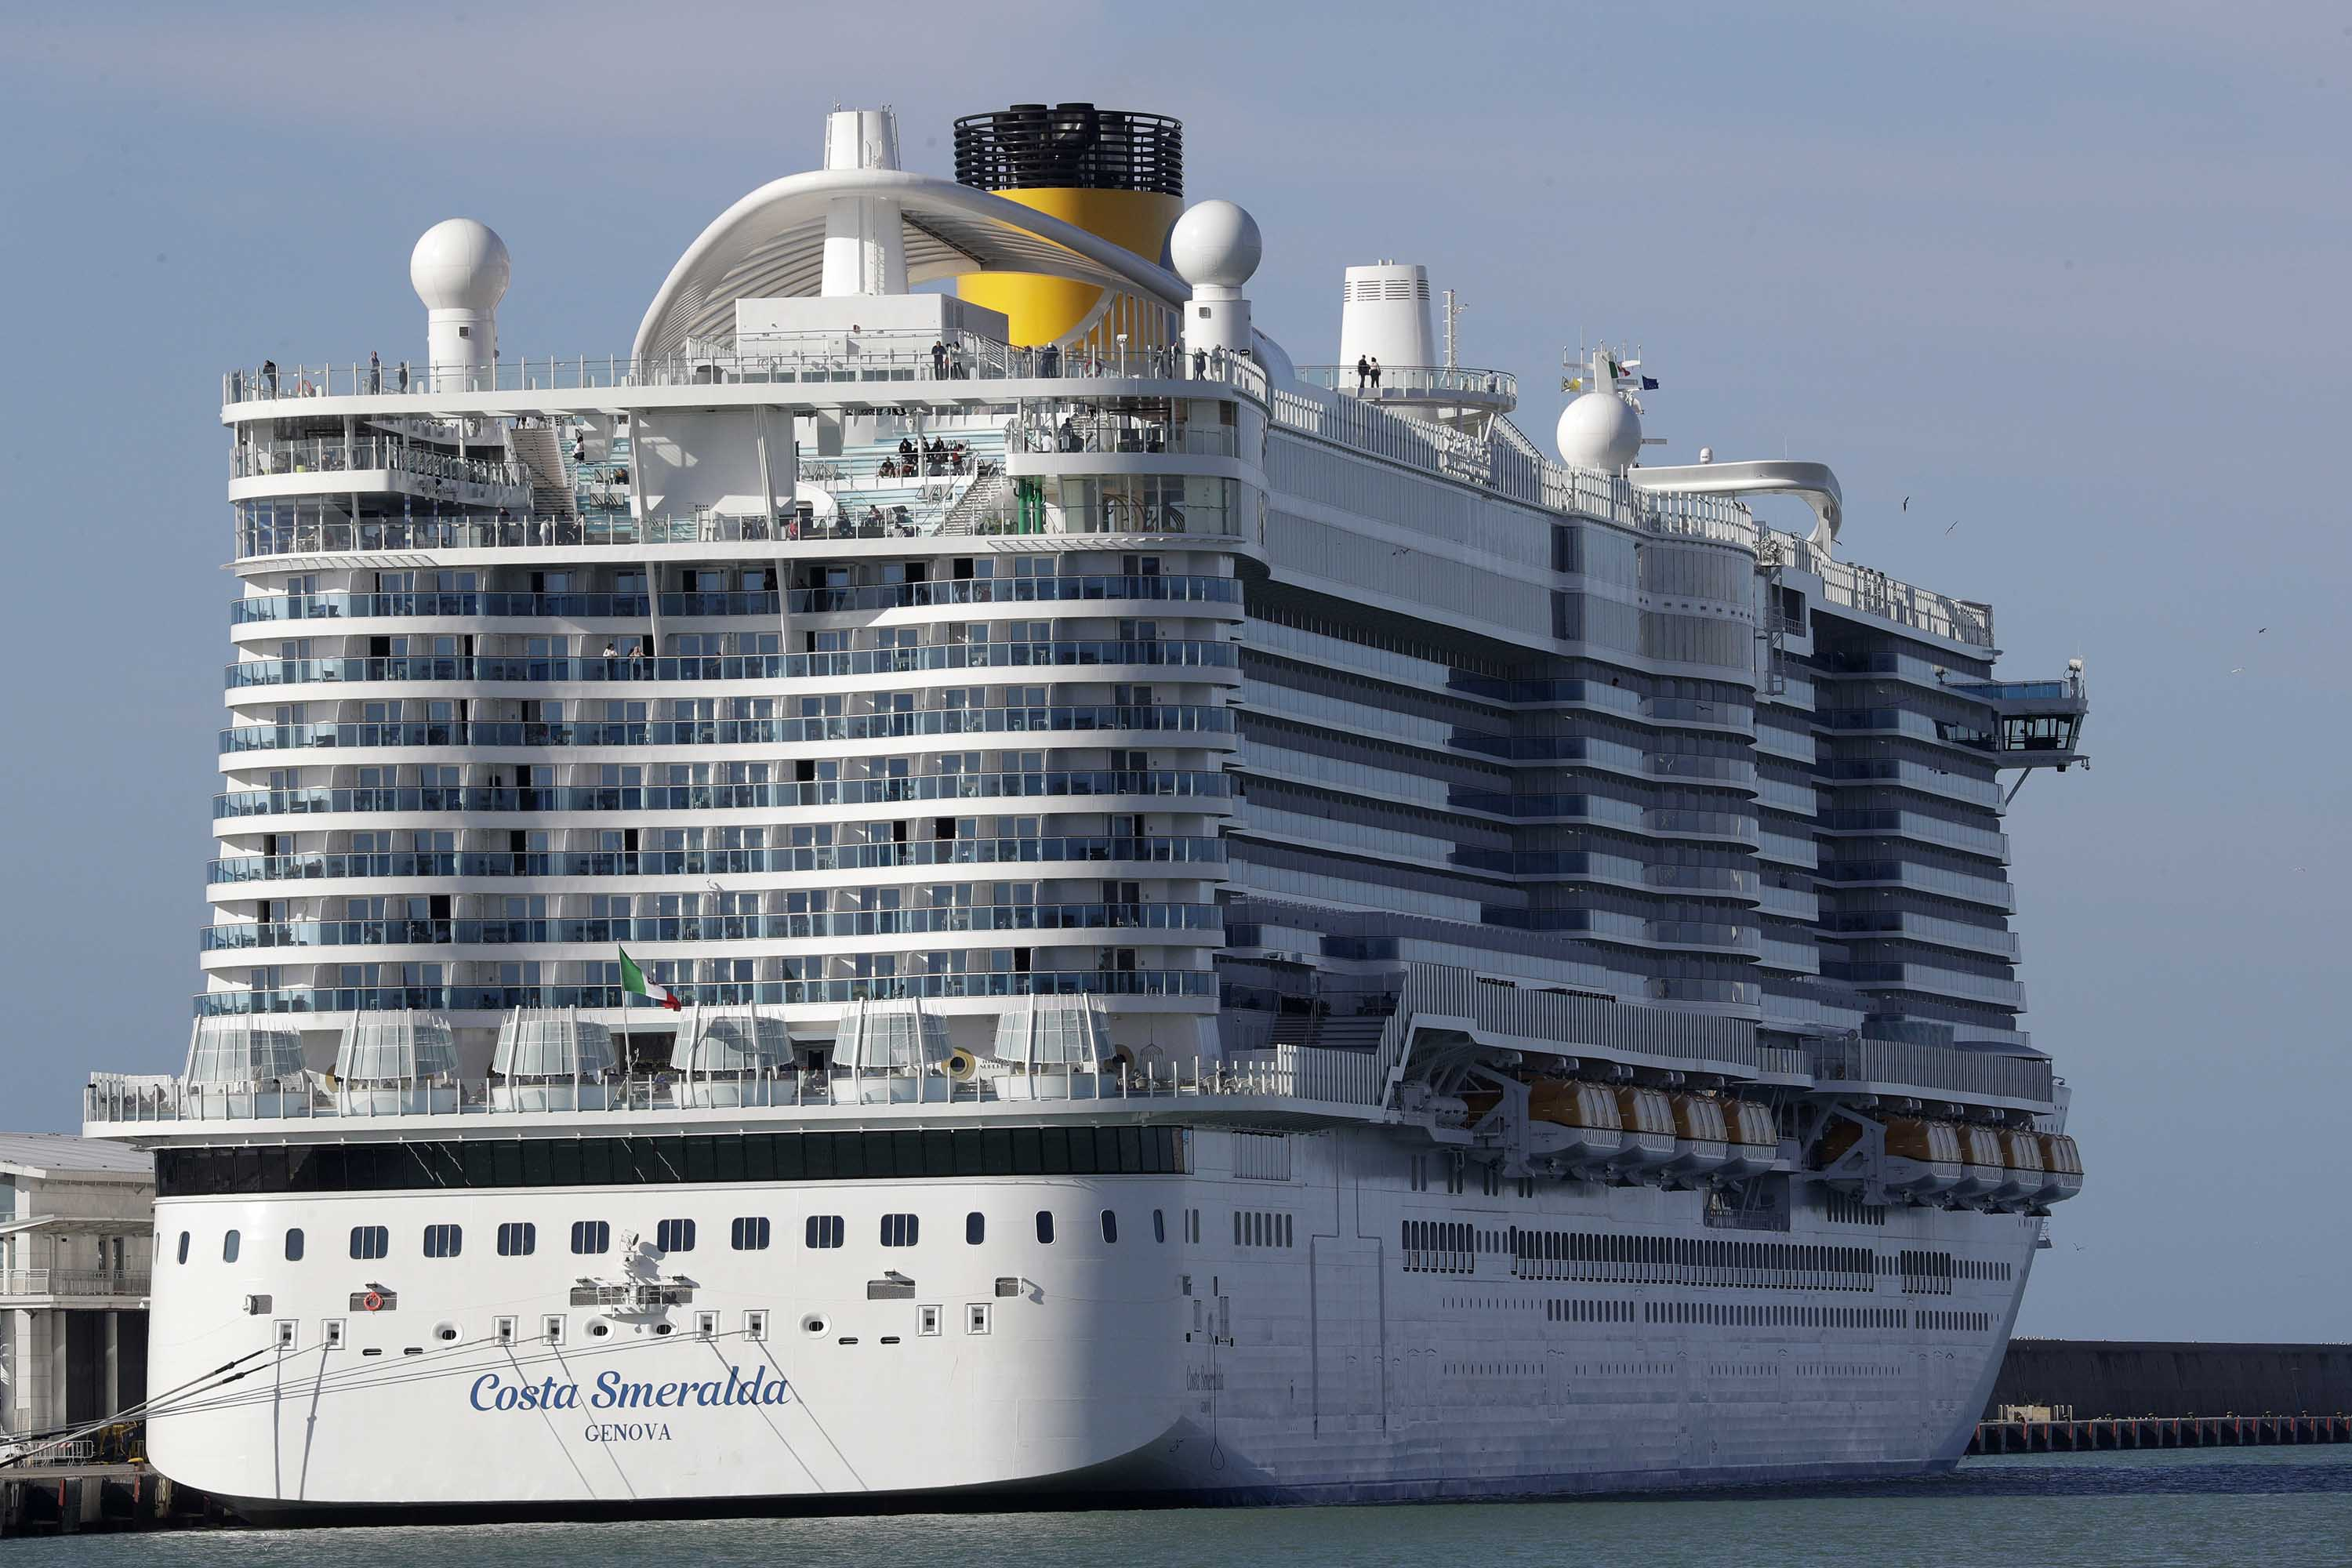 The Costa Smeralda cruise ship is seen docked at the Civitavecchia port near Rome, Italy, on Thursday.